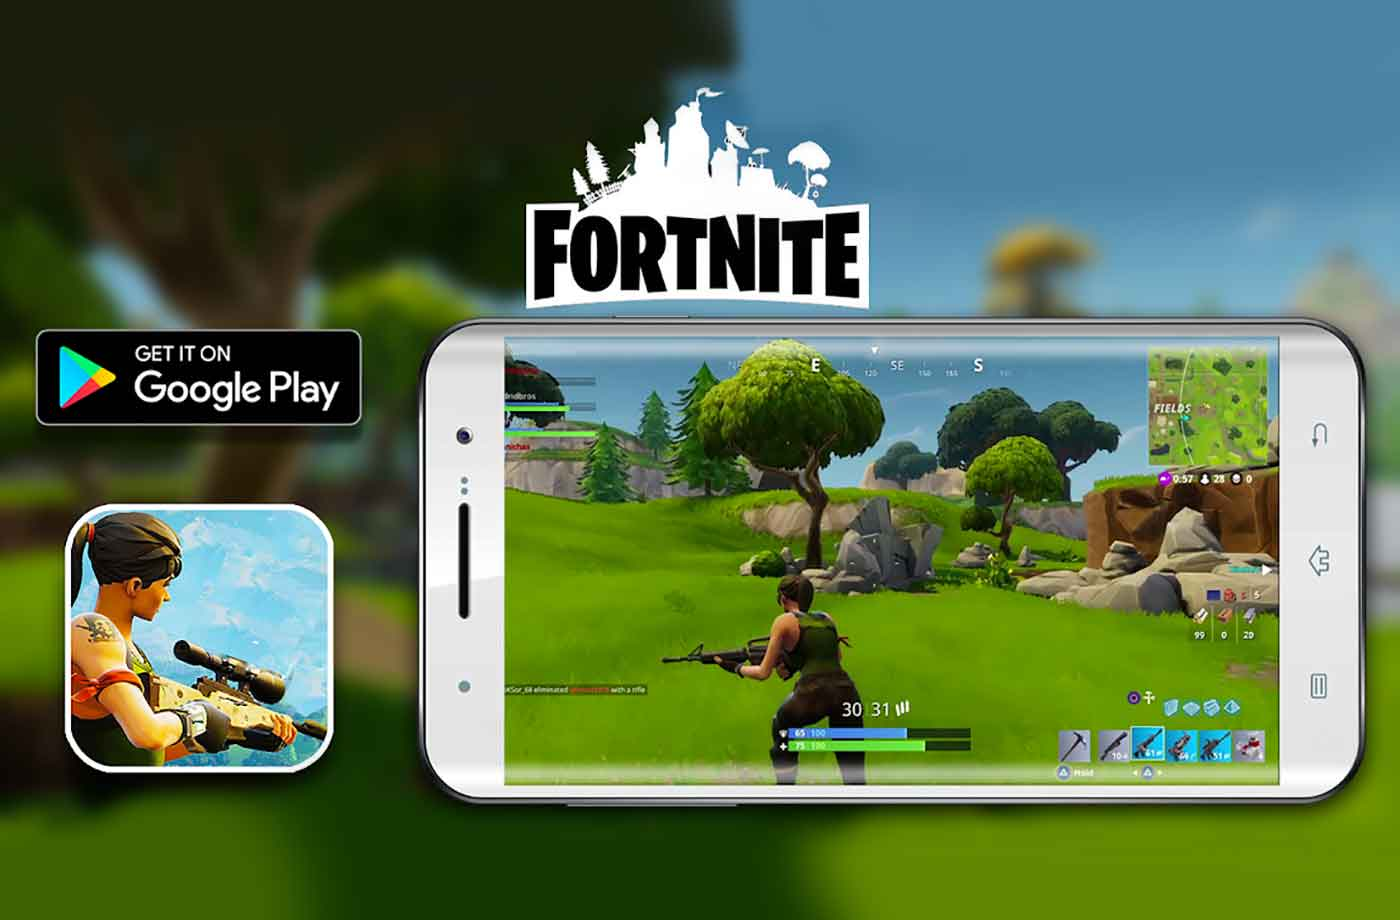 Google Researchers Find Dangerous Security Flaw in Fortnite's Android App